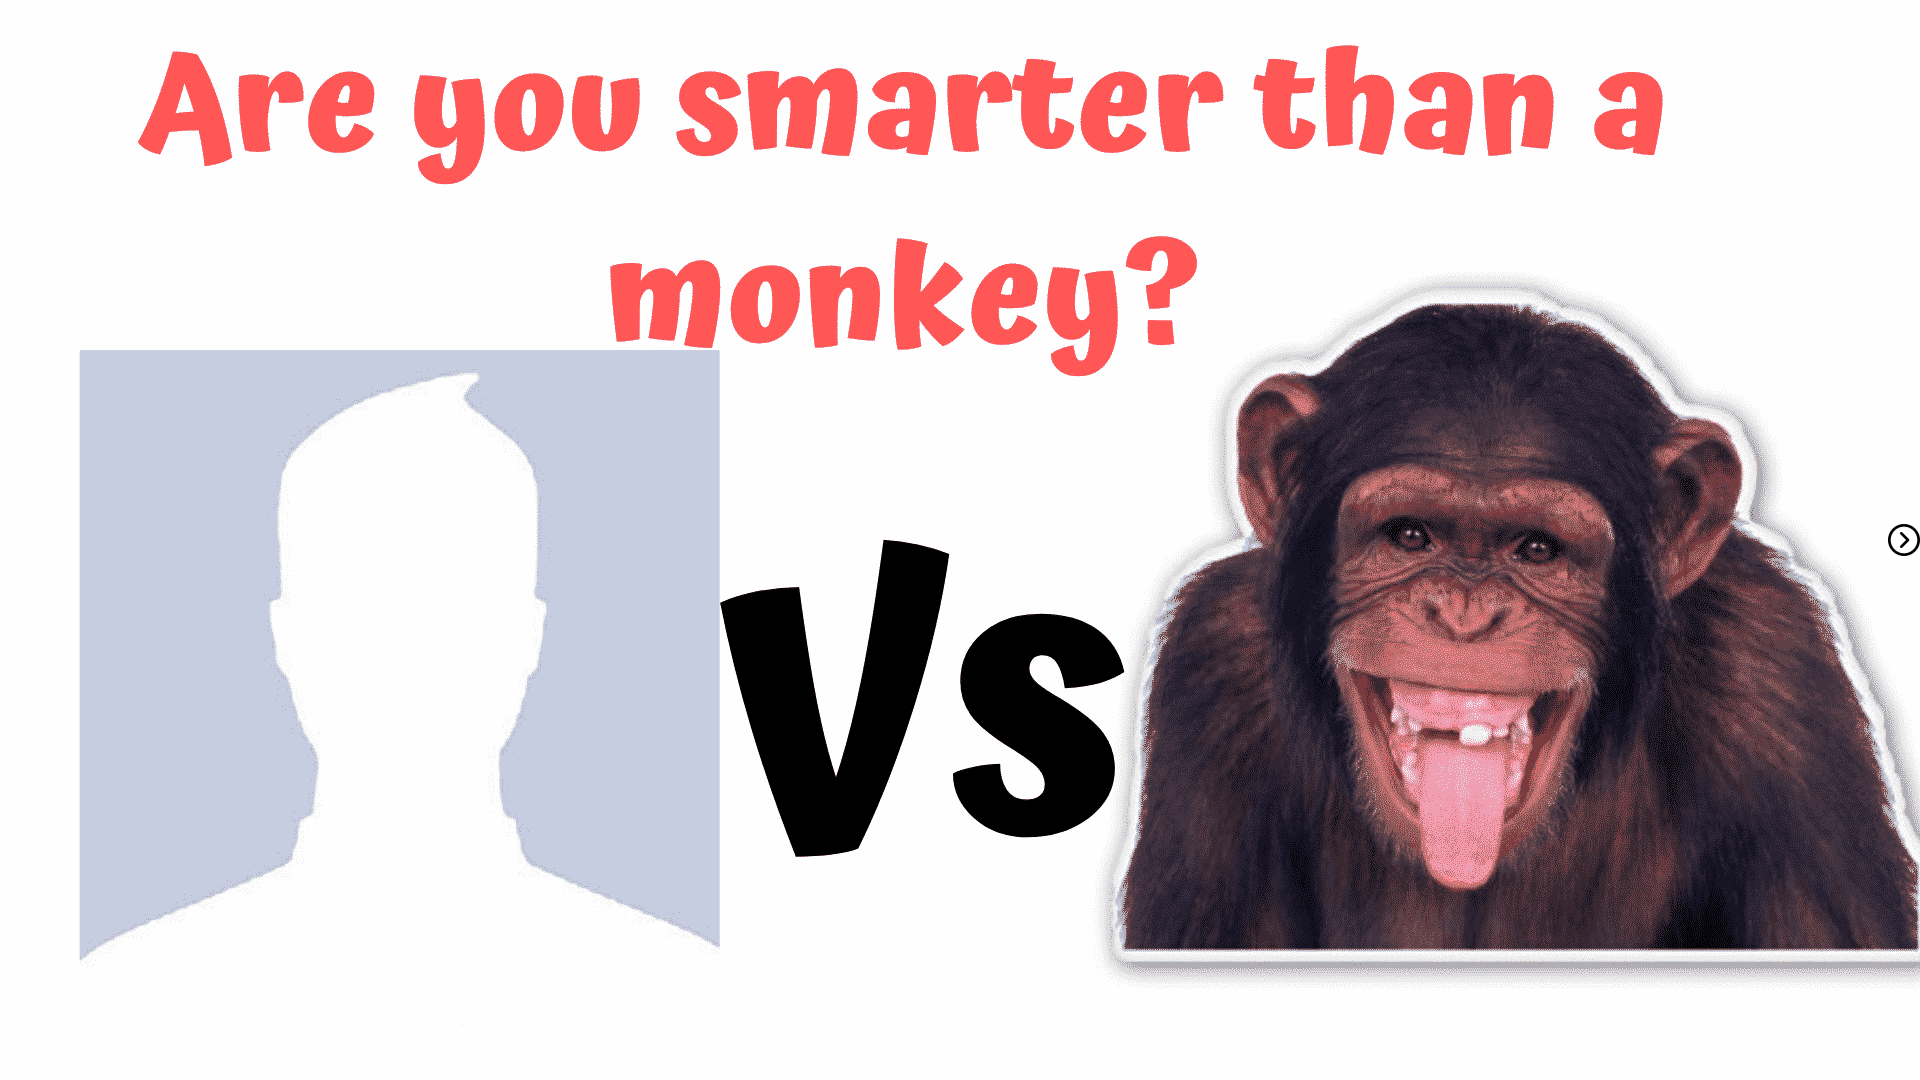 You vs Monkey: Are you smarter than a monkey? IQ test 4